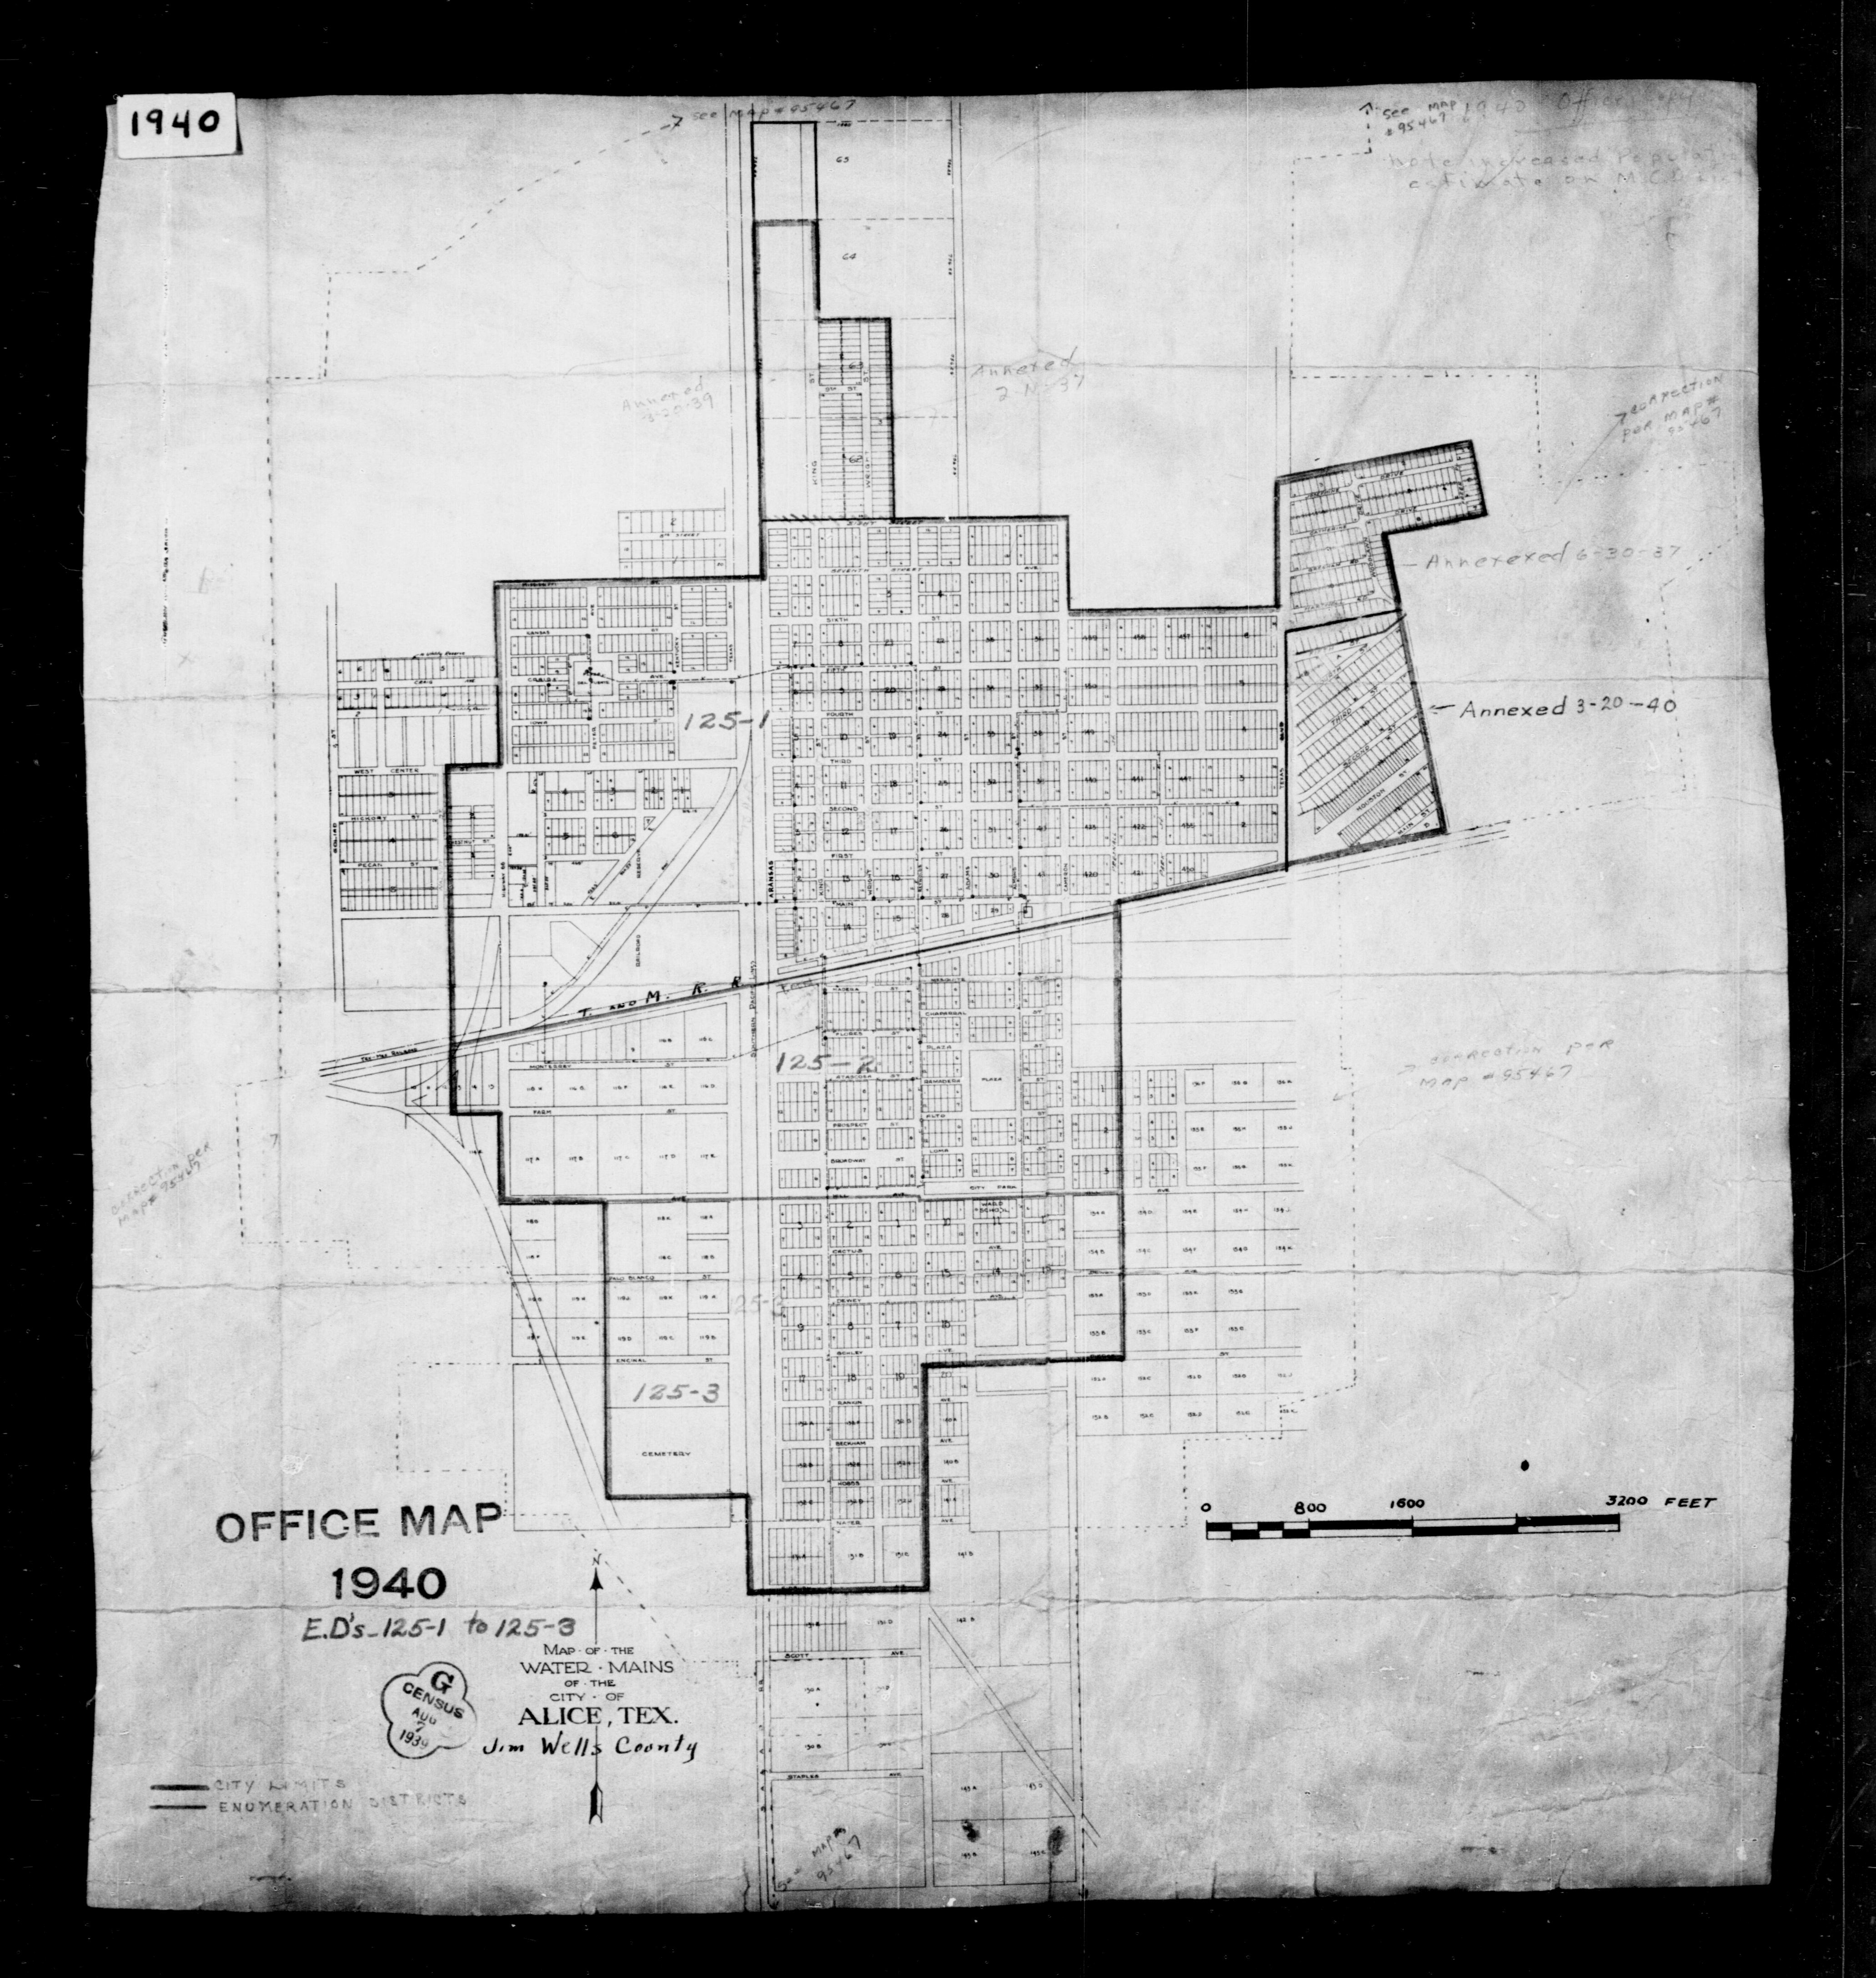 1940 Census Enumeration District Maps - Texas - Jim Wells County - Alice - ED 125-1A, ED 125-1B, ED 125-1C, ED 125-2, ED 125-3